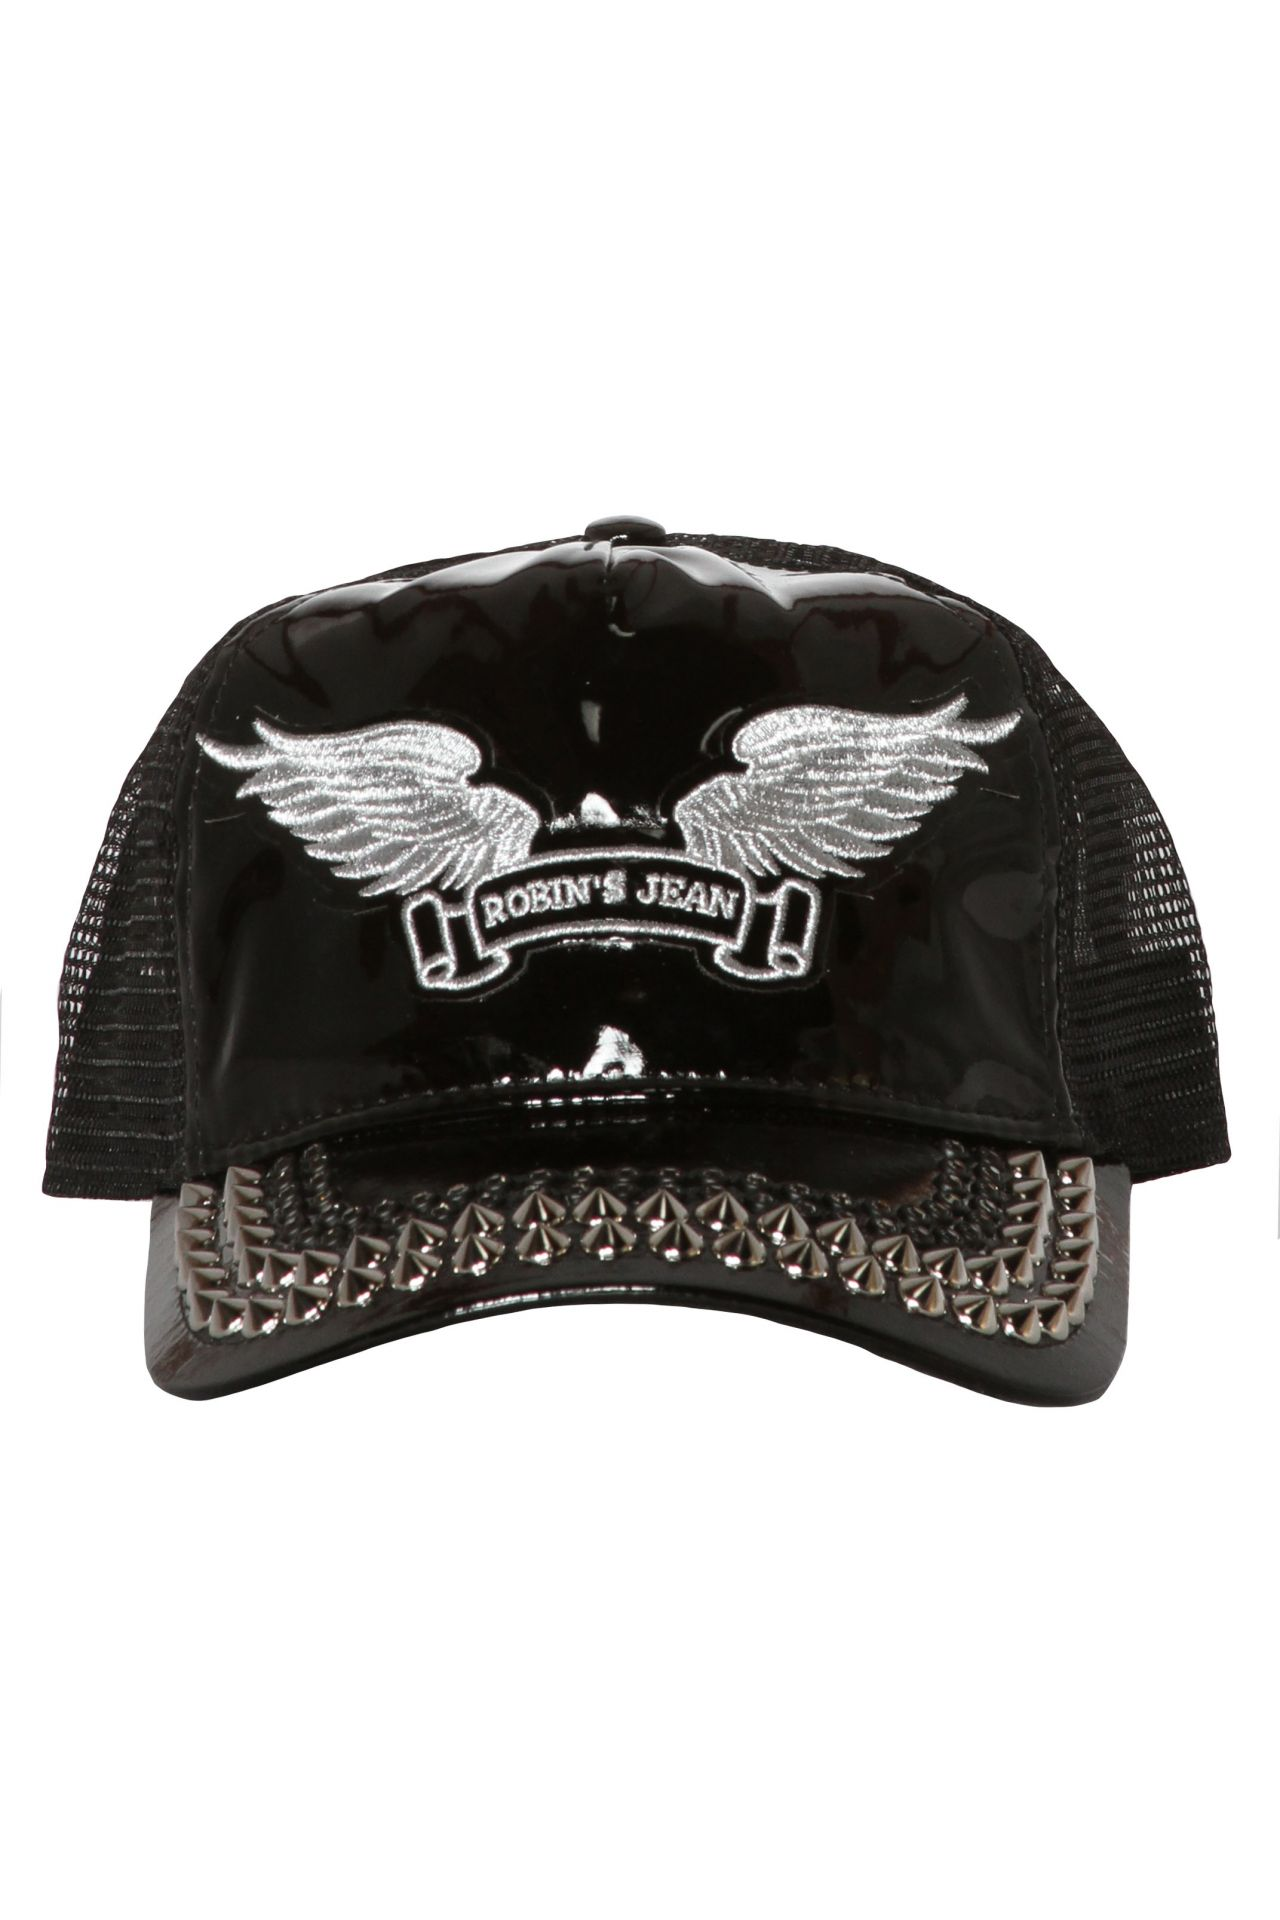 TRUCKER CAP IN PATENT BLACK WITH CRYSTALS